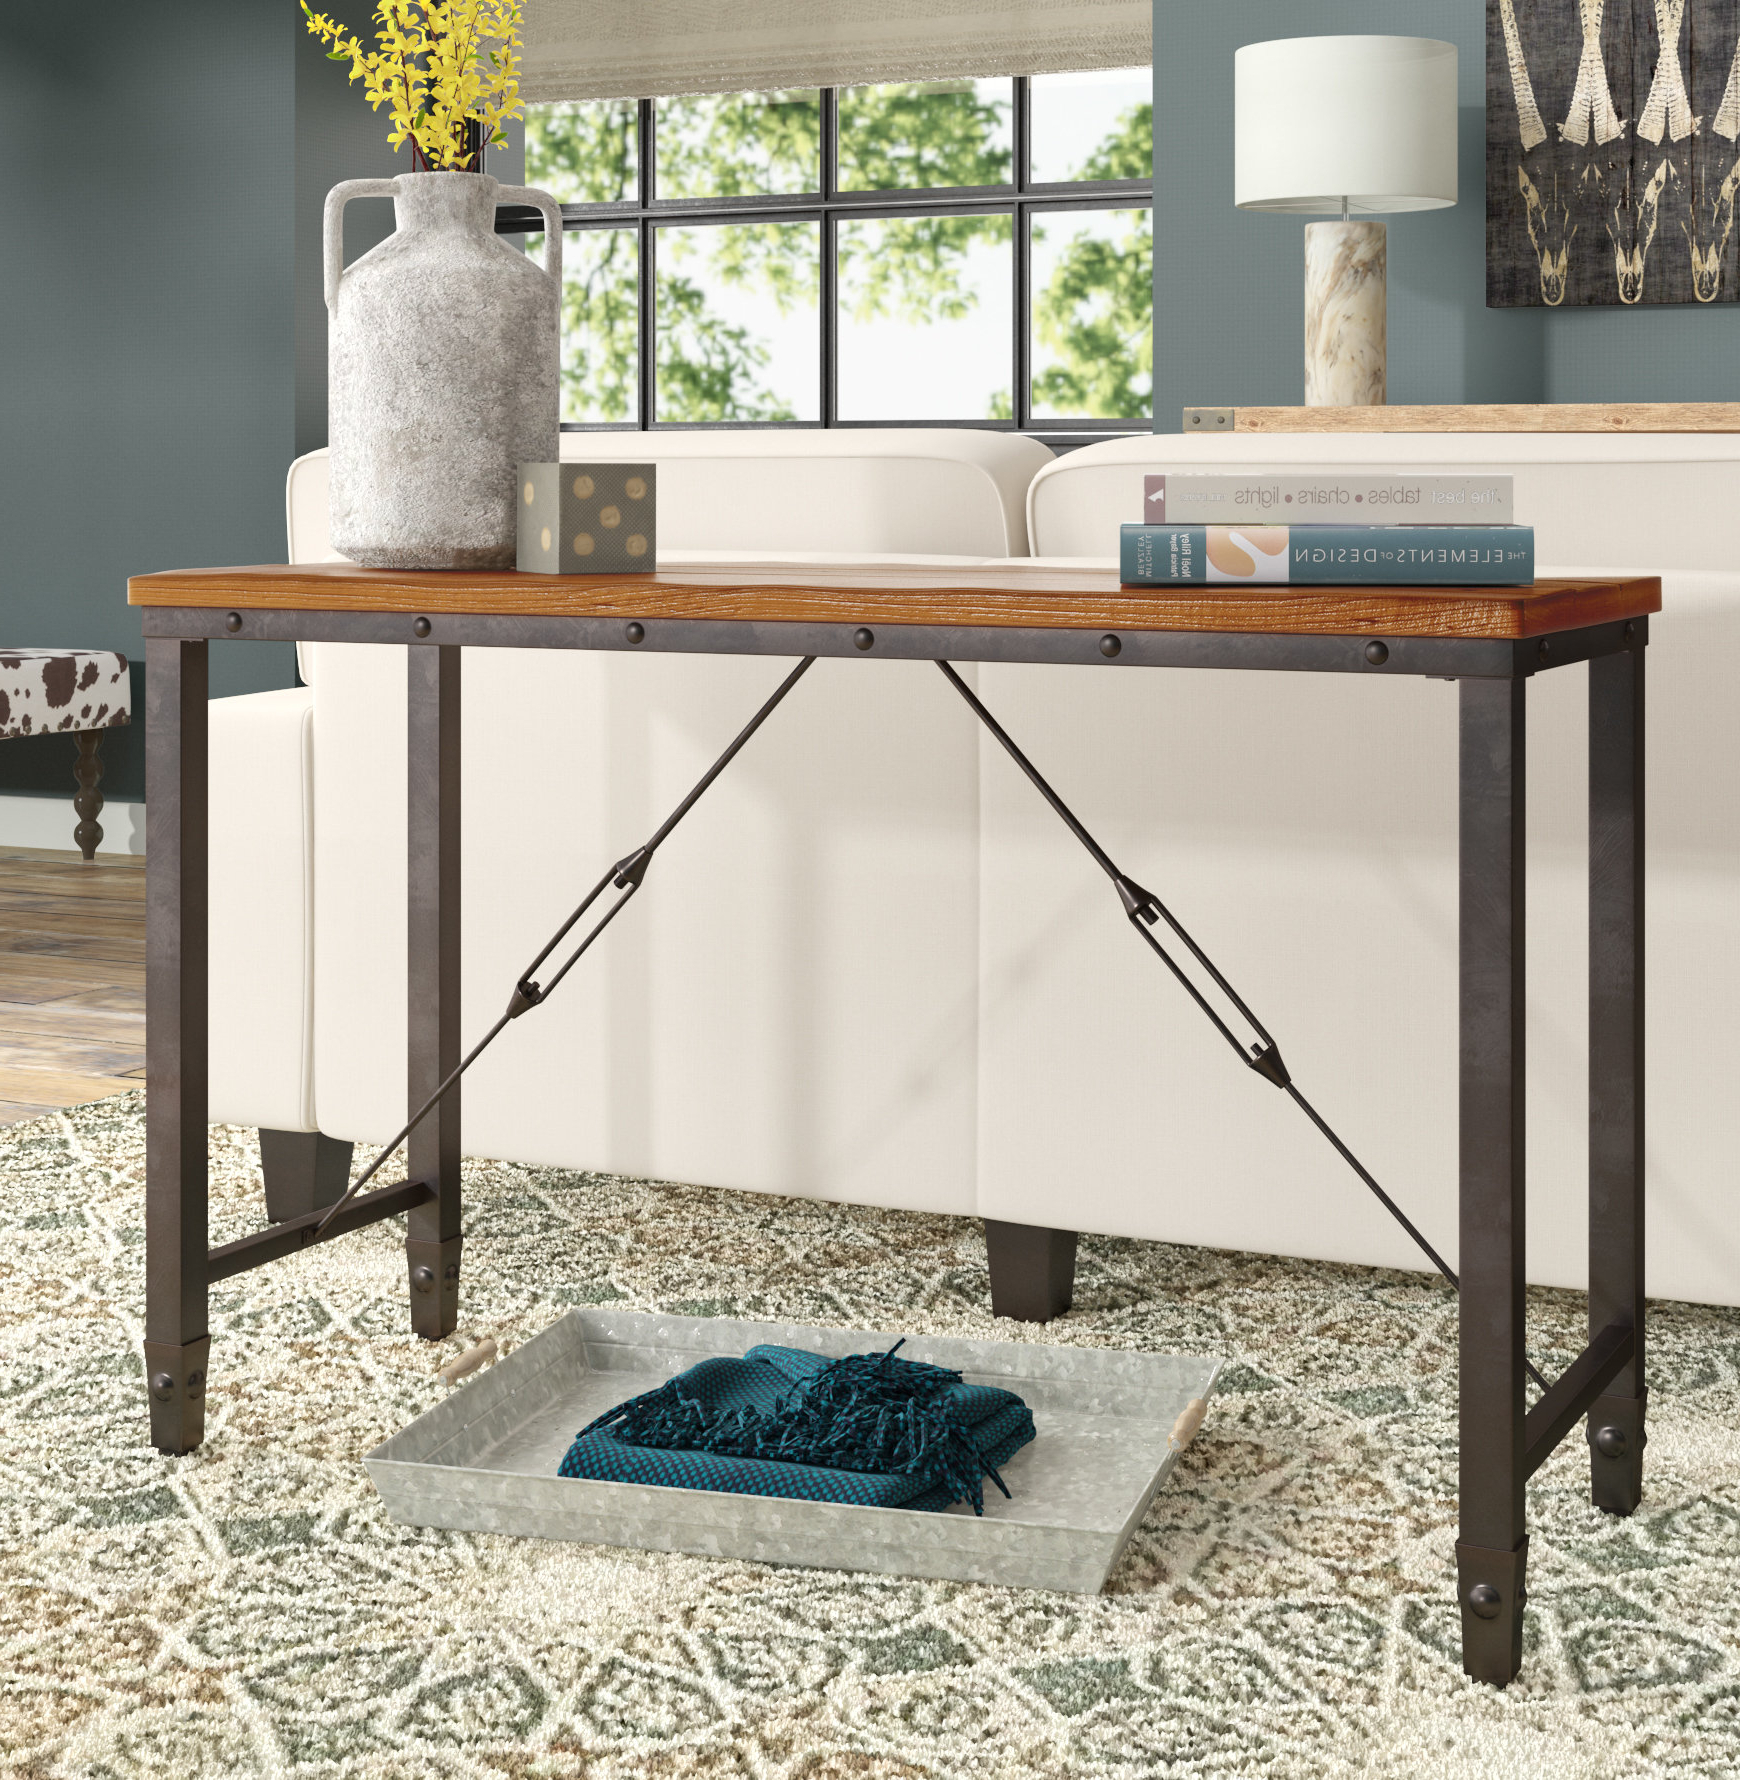 Mix Patina Metal Frame Console Tables Pertaining To Famous Industrial Console Tables You'll Love (View 2 of 20)